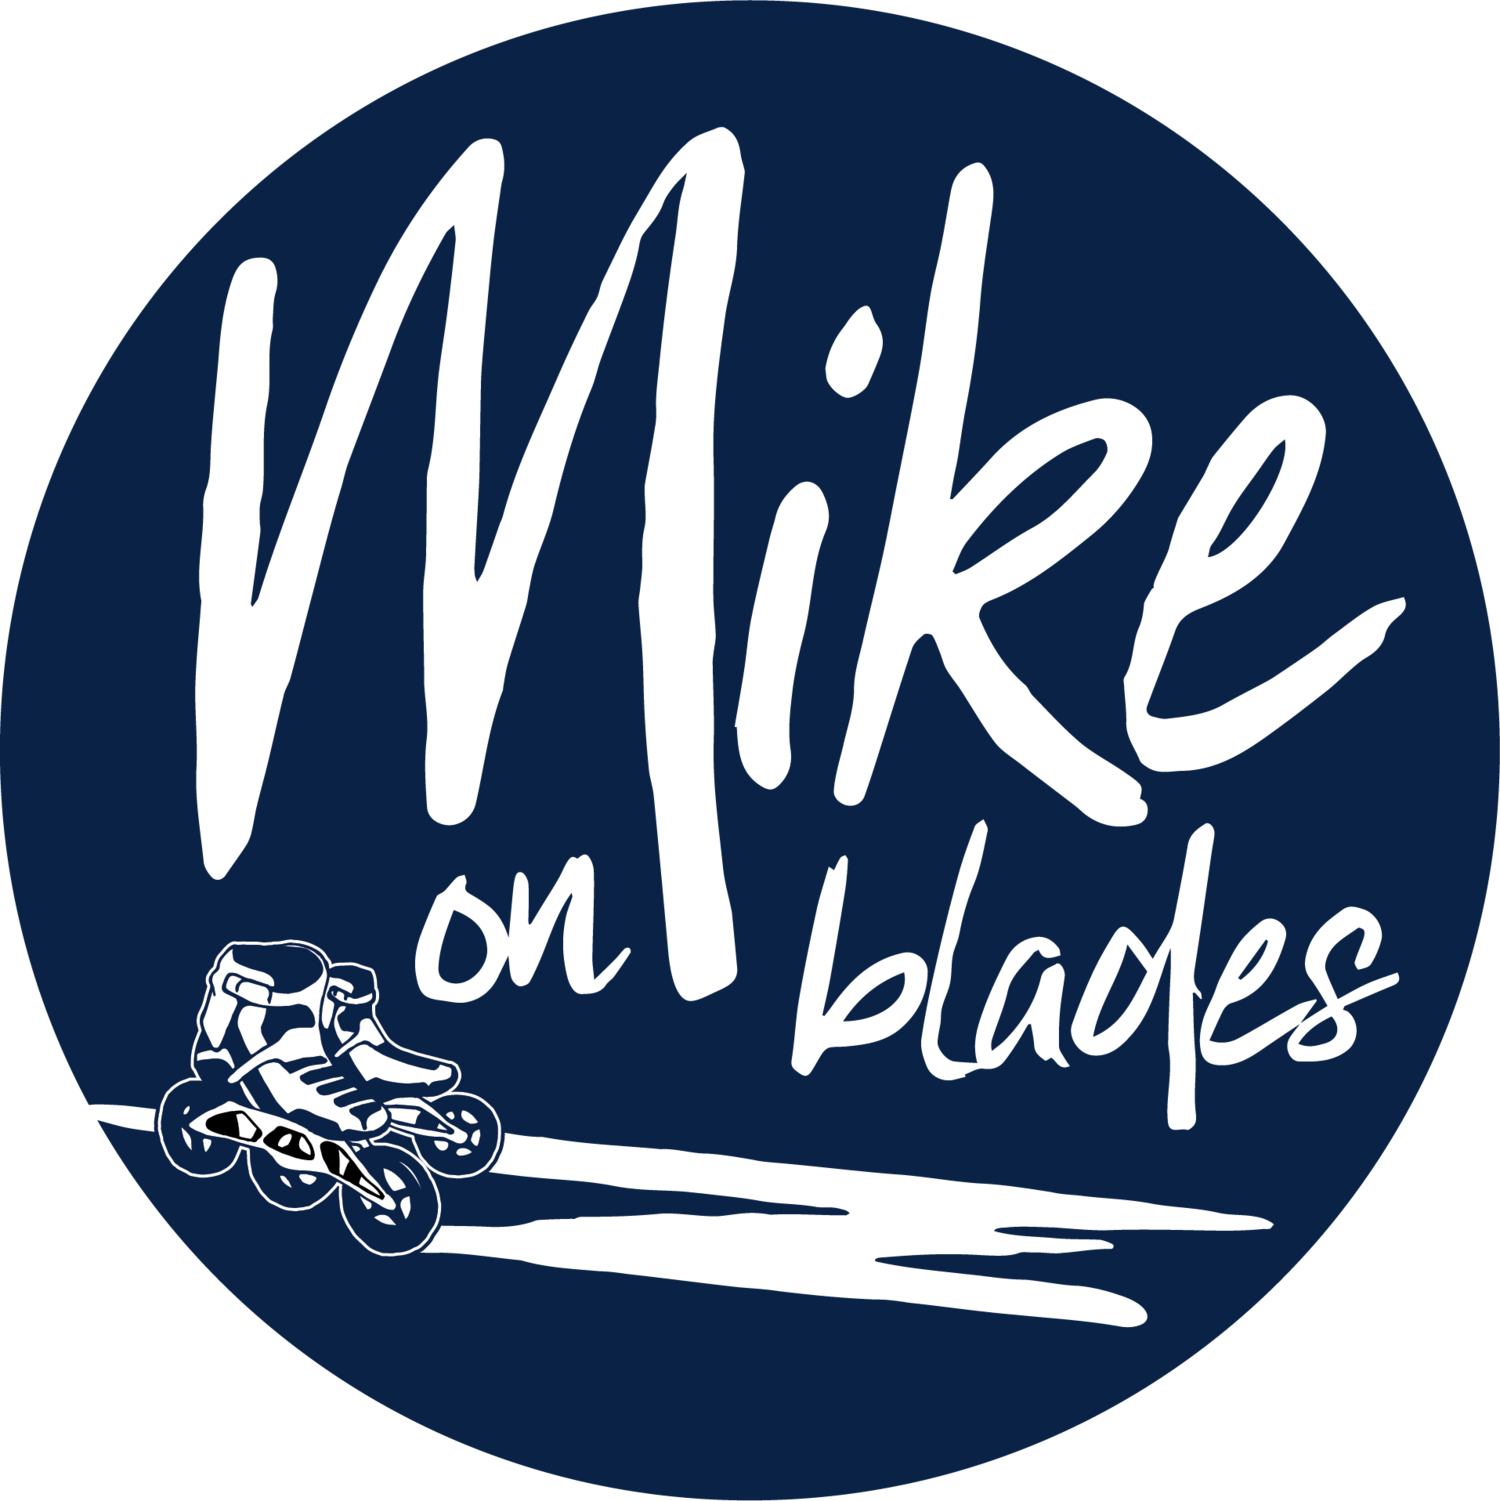 Mike on Blades